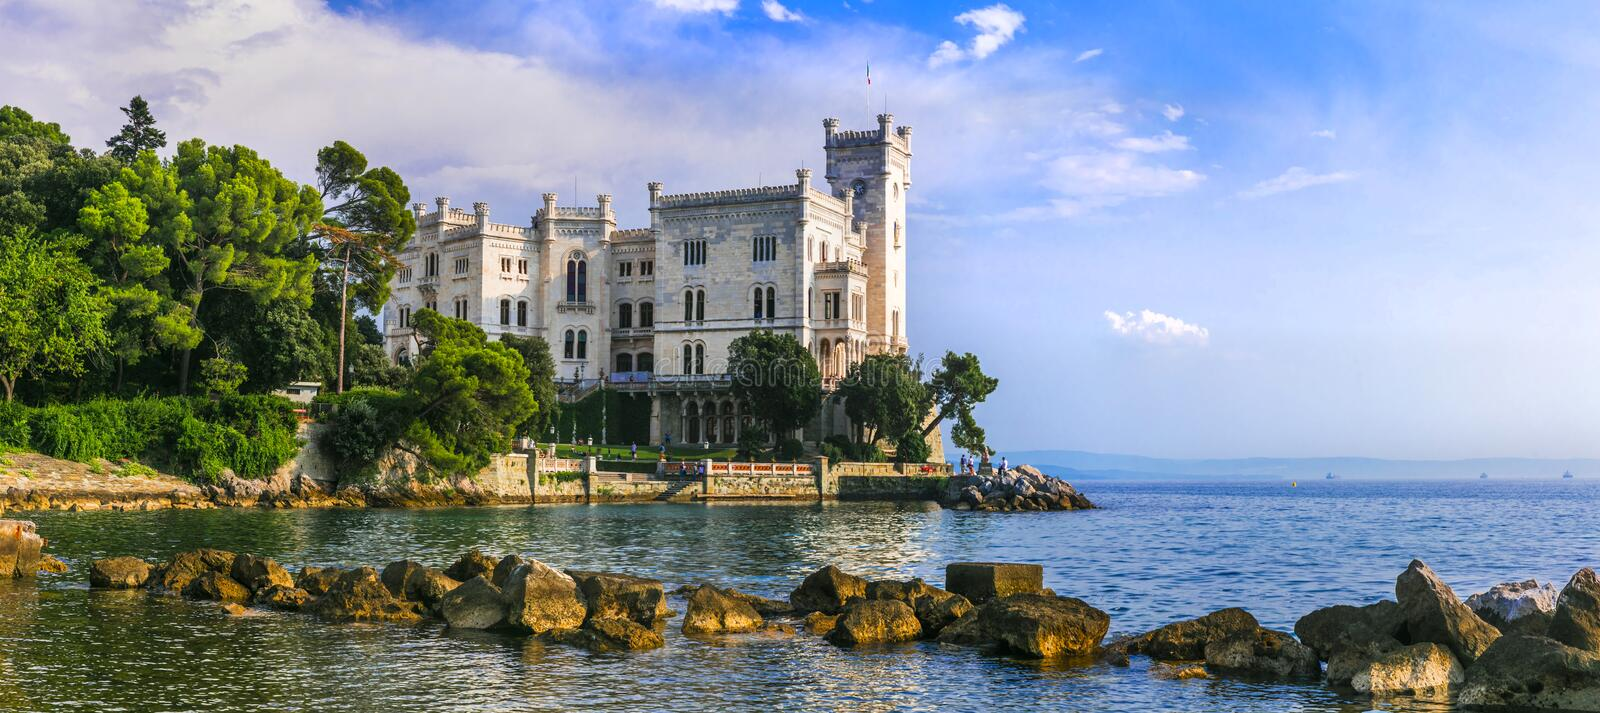 Beautiful castles of Italy - Miramare in Trieste royalty free stock photos